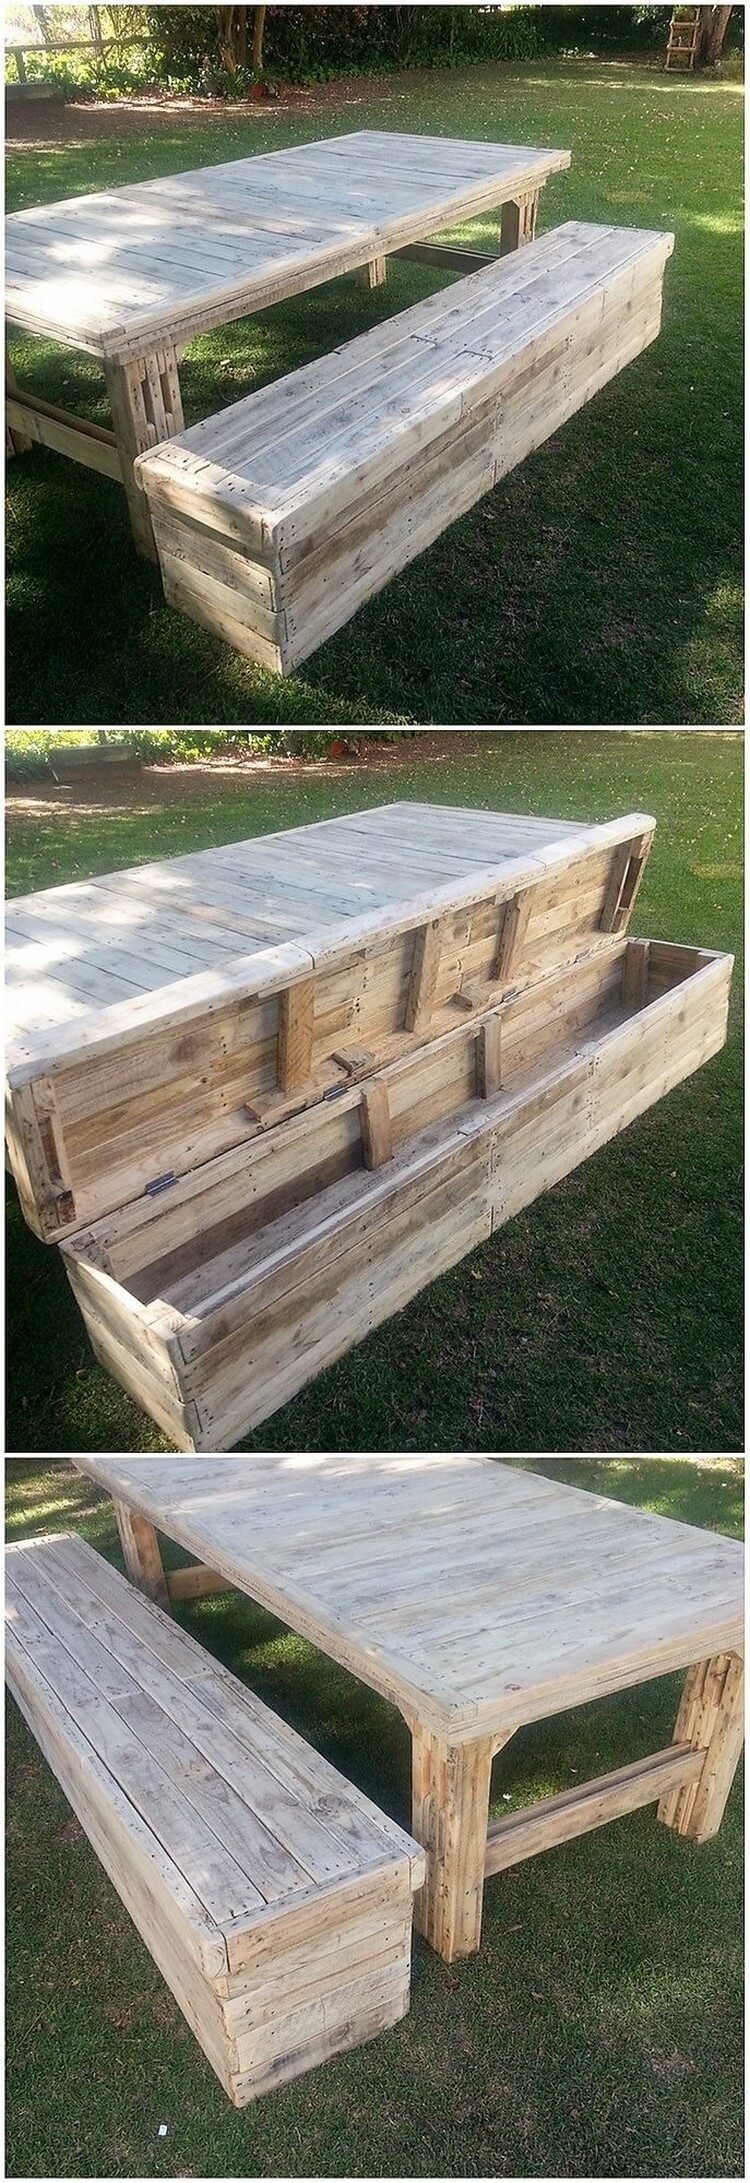 Pallet Table and Bench with Storage